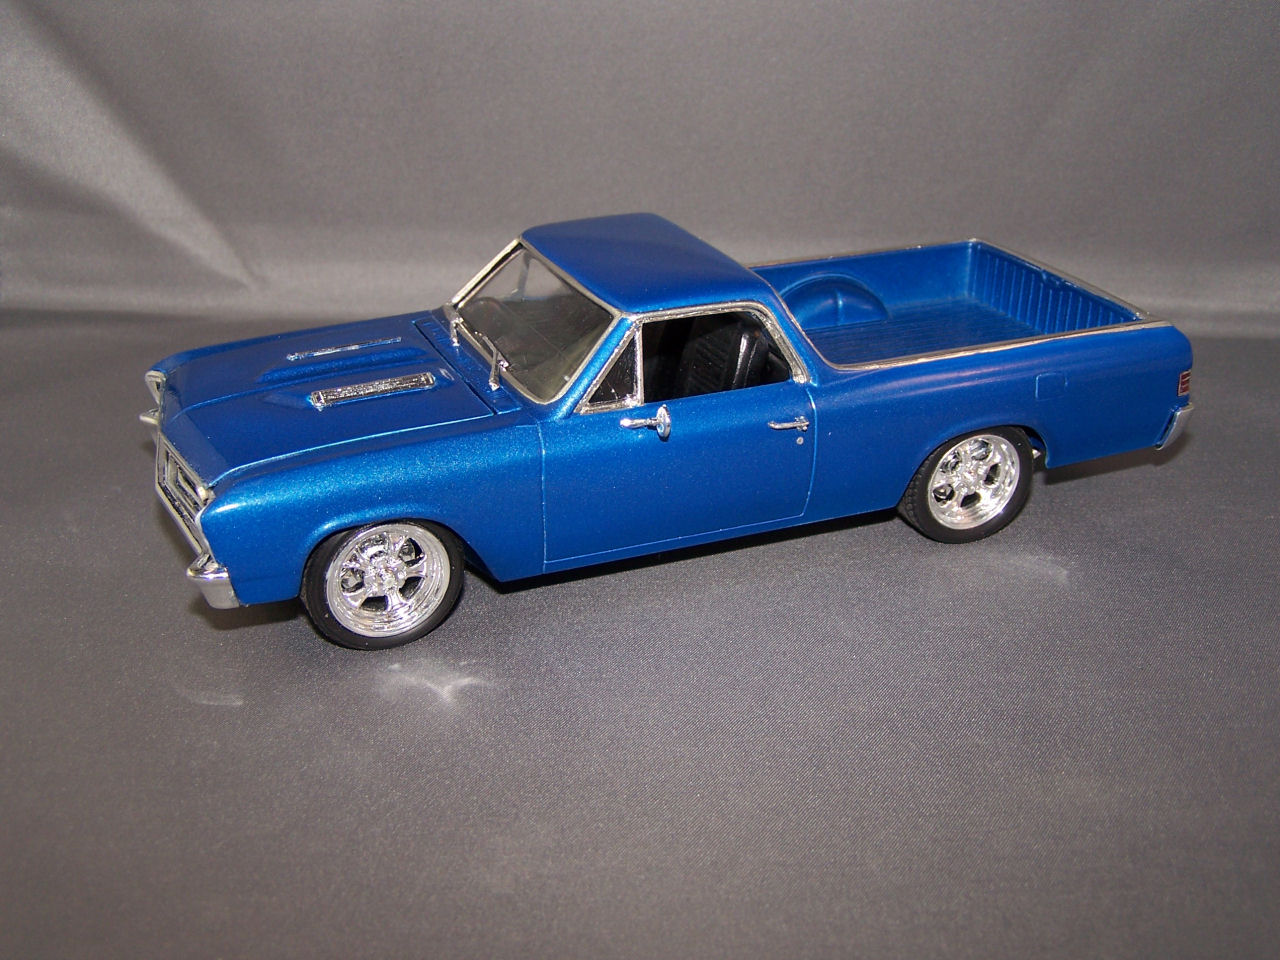 Revell 7548 1/25 Scale 1967 Chevrolet El Camino SS Kit Build Review